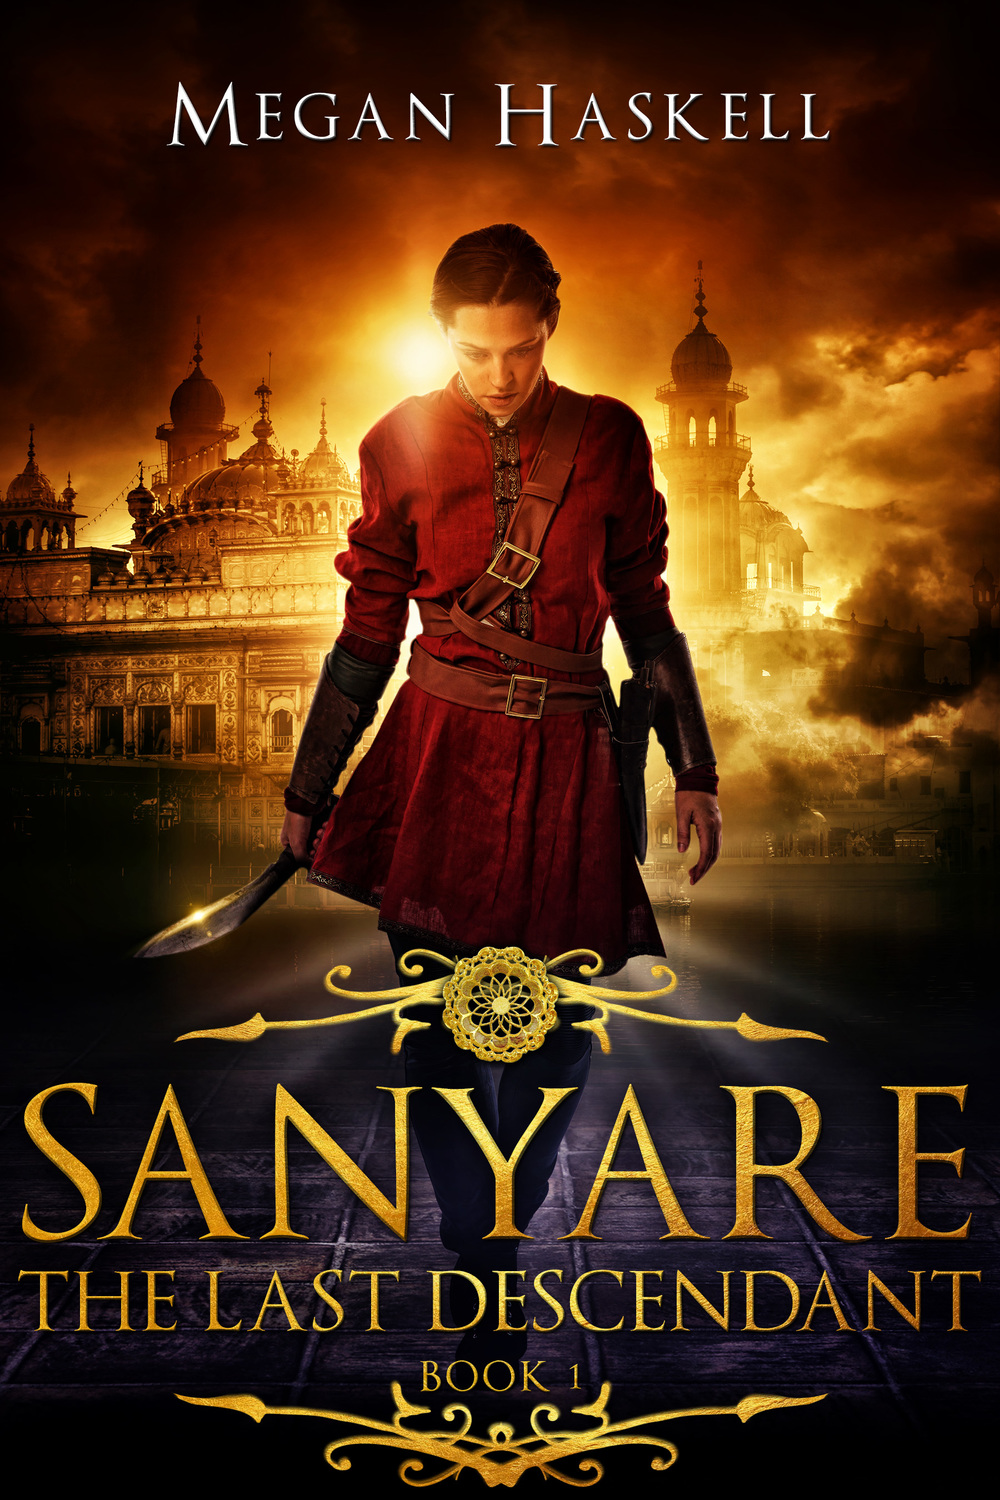 Sanyare: The Last Descendant